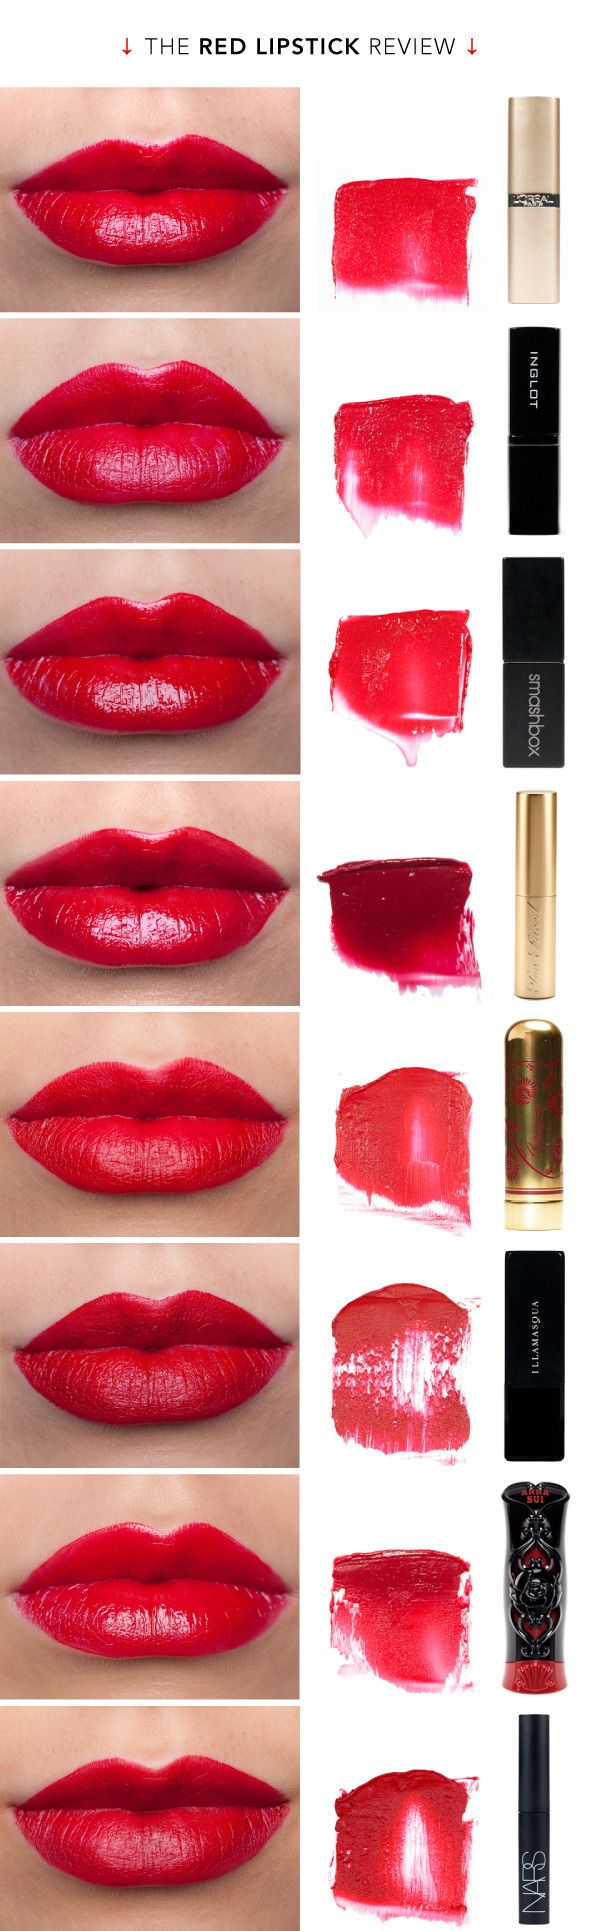 The Red Lipstick Review - The fourth one down would probably look good on me (it's blue red).  I only wear lipstick a few times a year but have been looking for a good red for YEARS, and I can't have anything with an orange undertone.